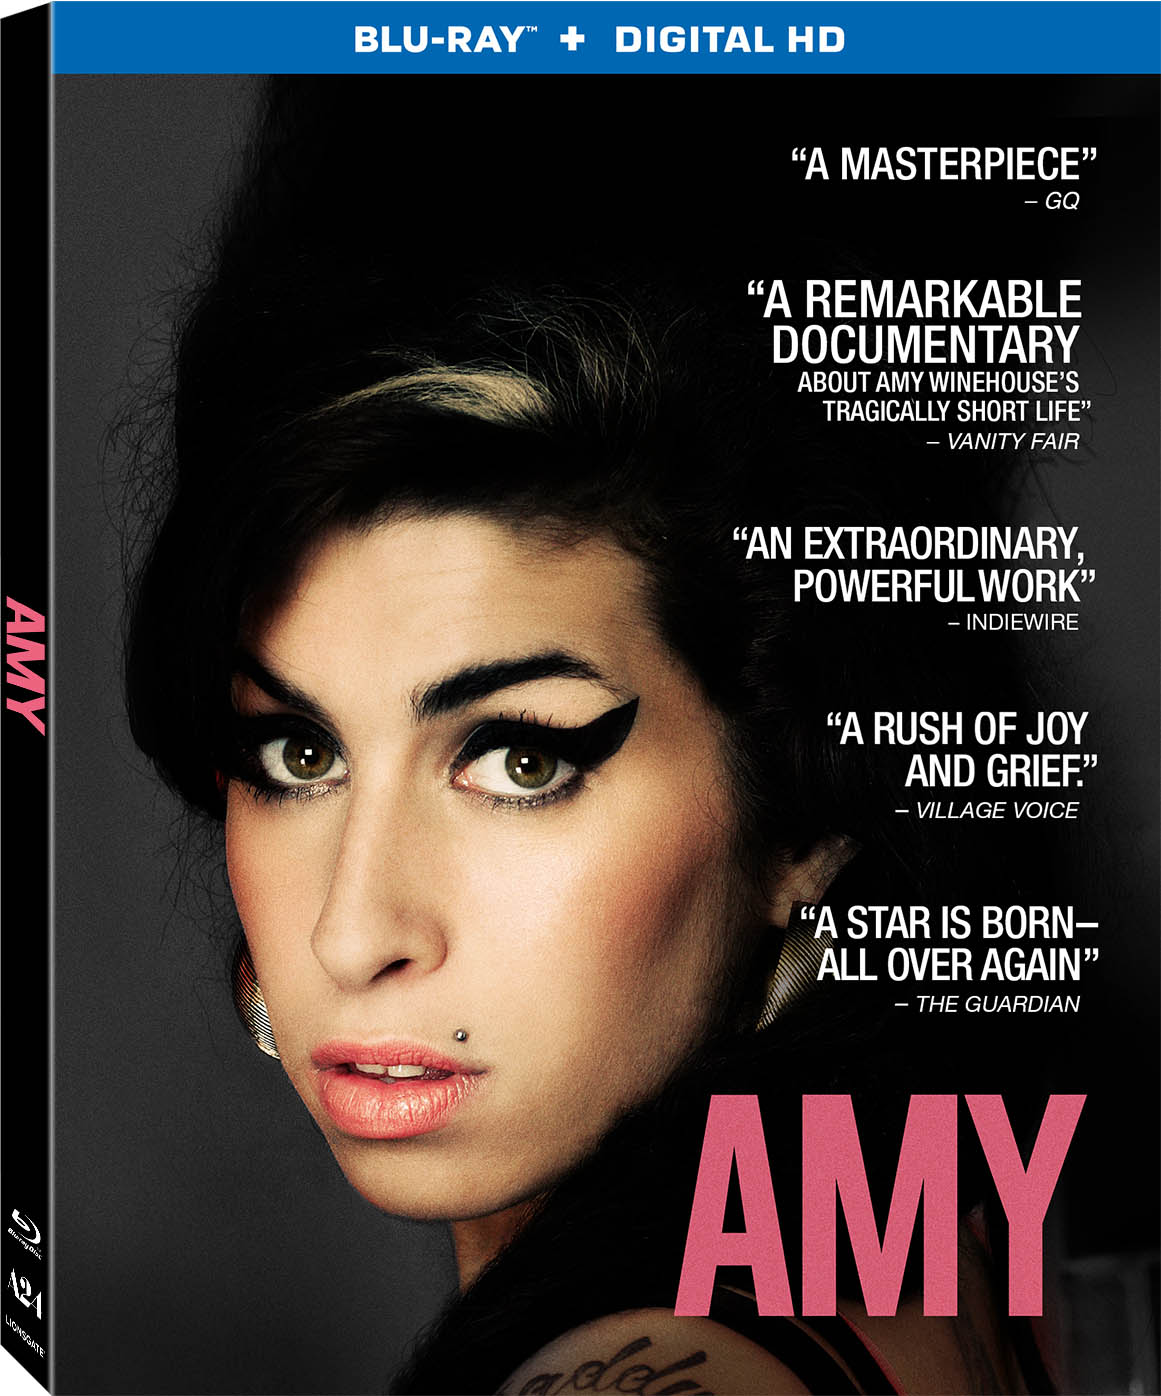 Film-Arcade.net: Criti... Amy Winehouse Documentary